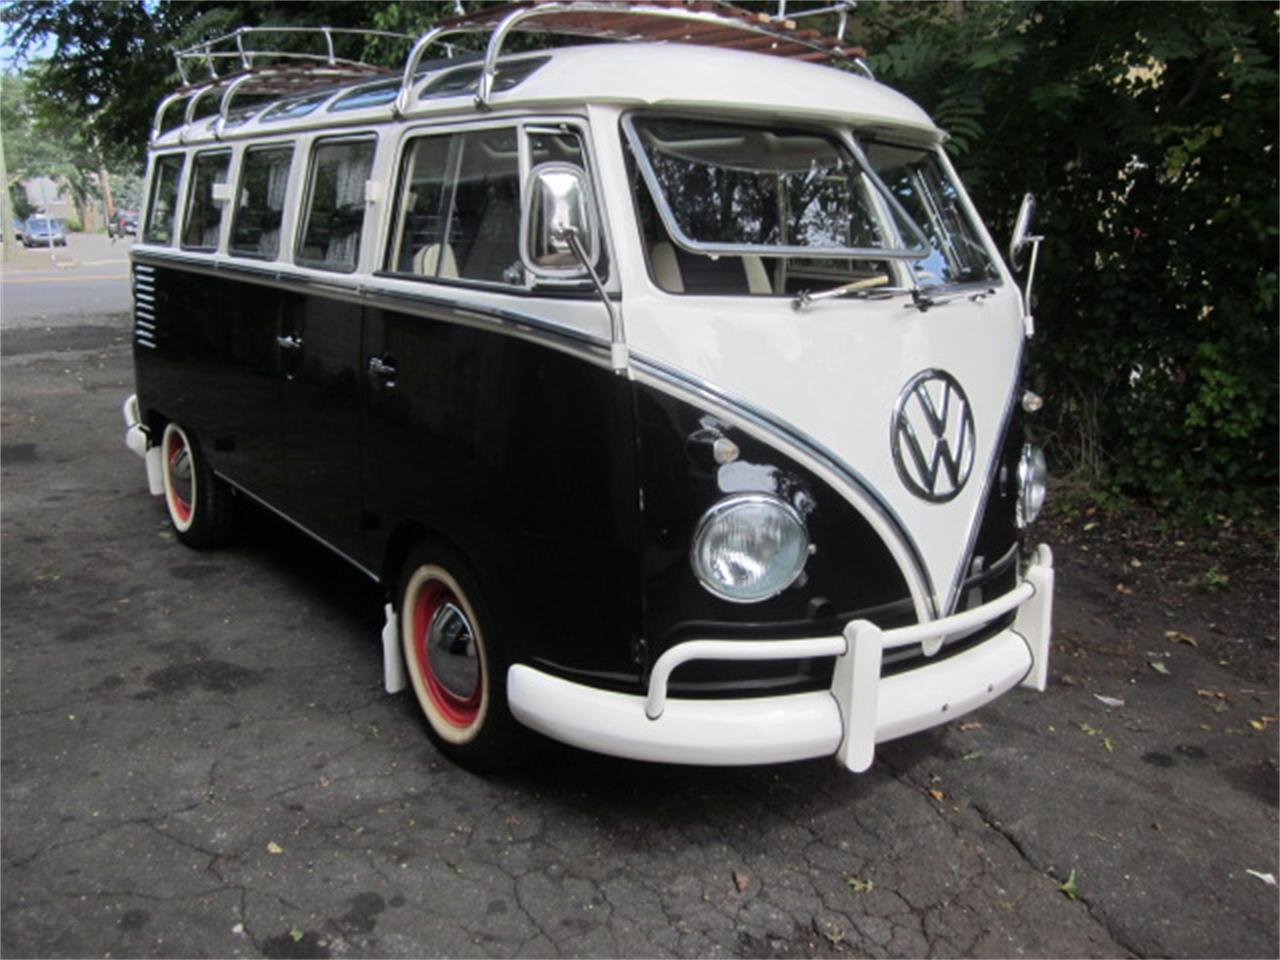 1959 Volkswagen Bus For Sale In Stratford Ct Classiccarsbay Com